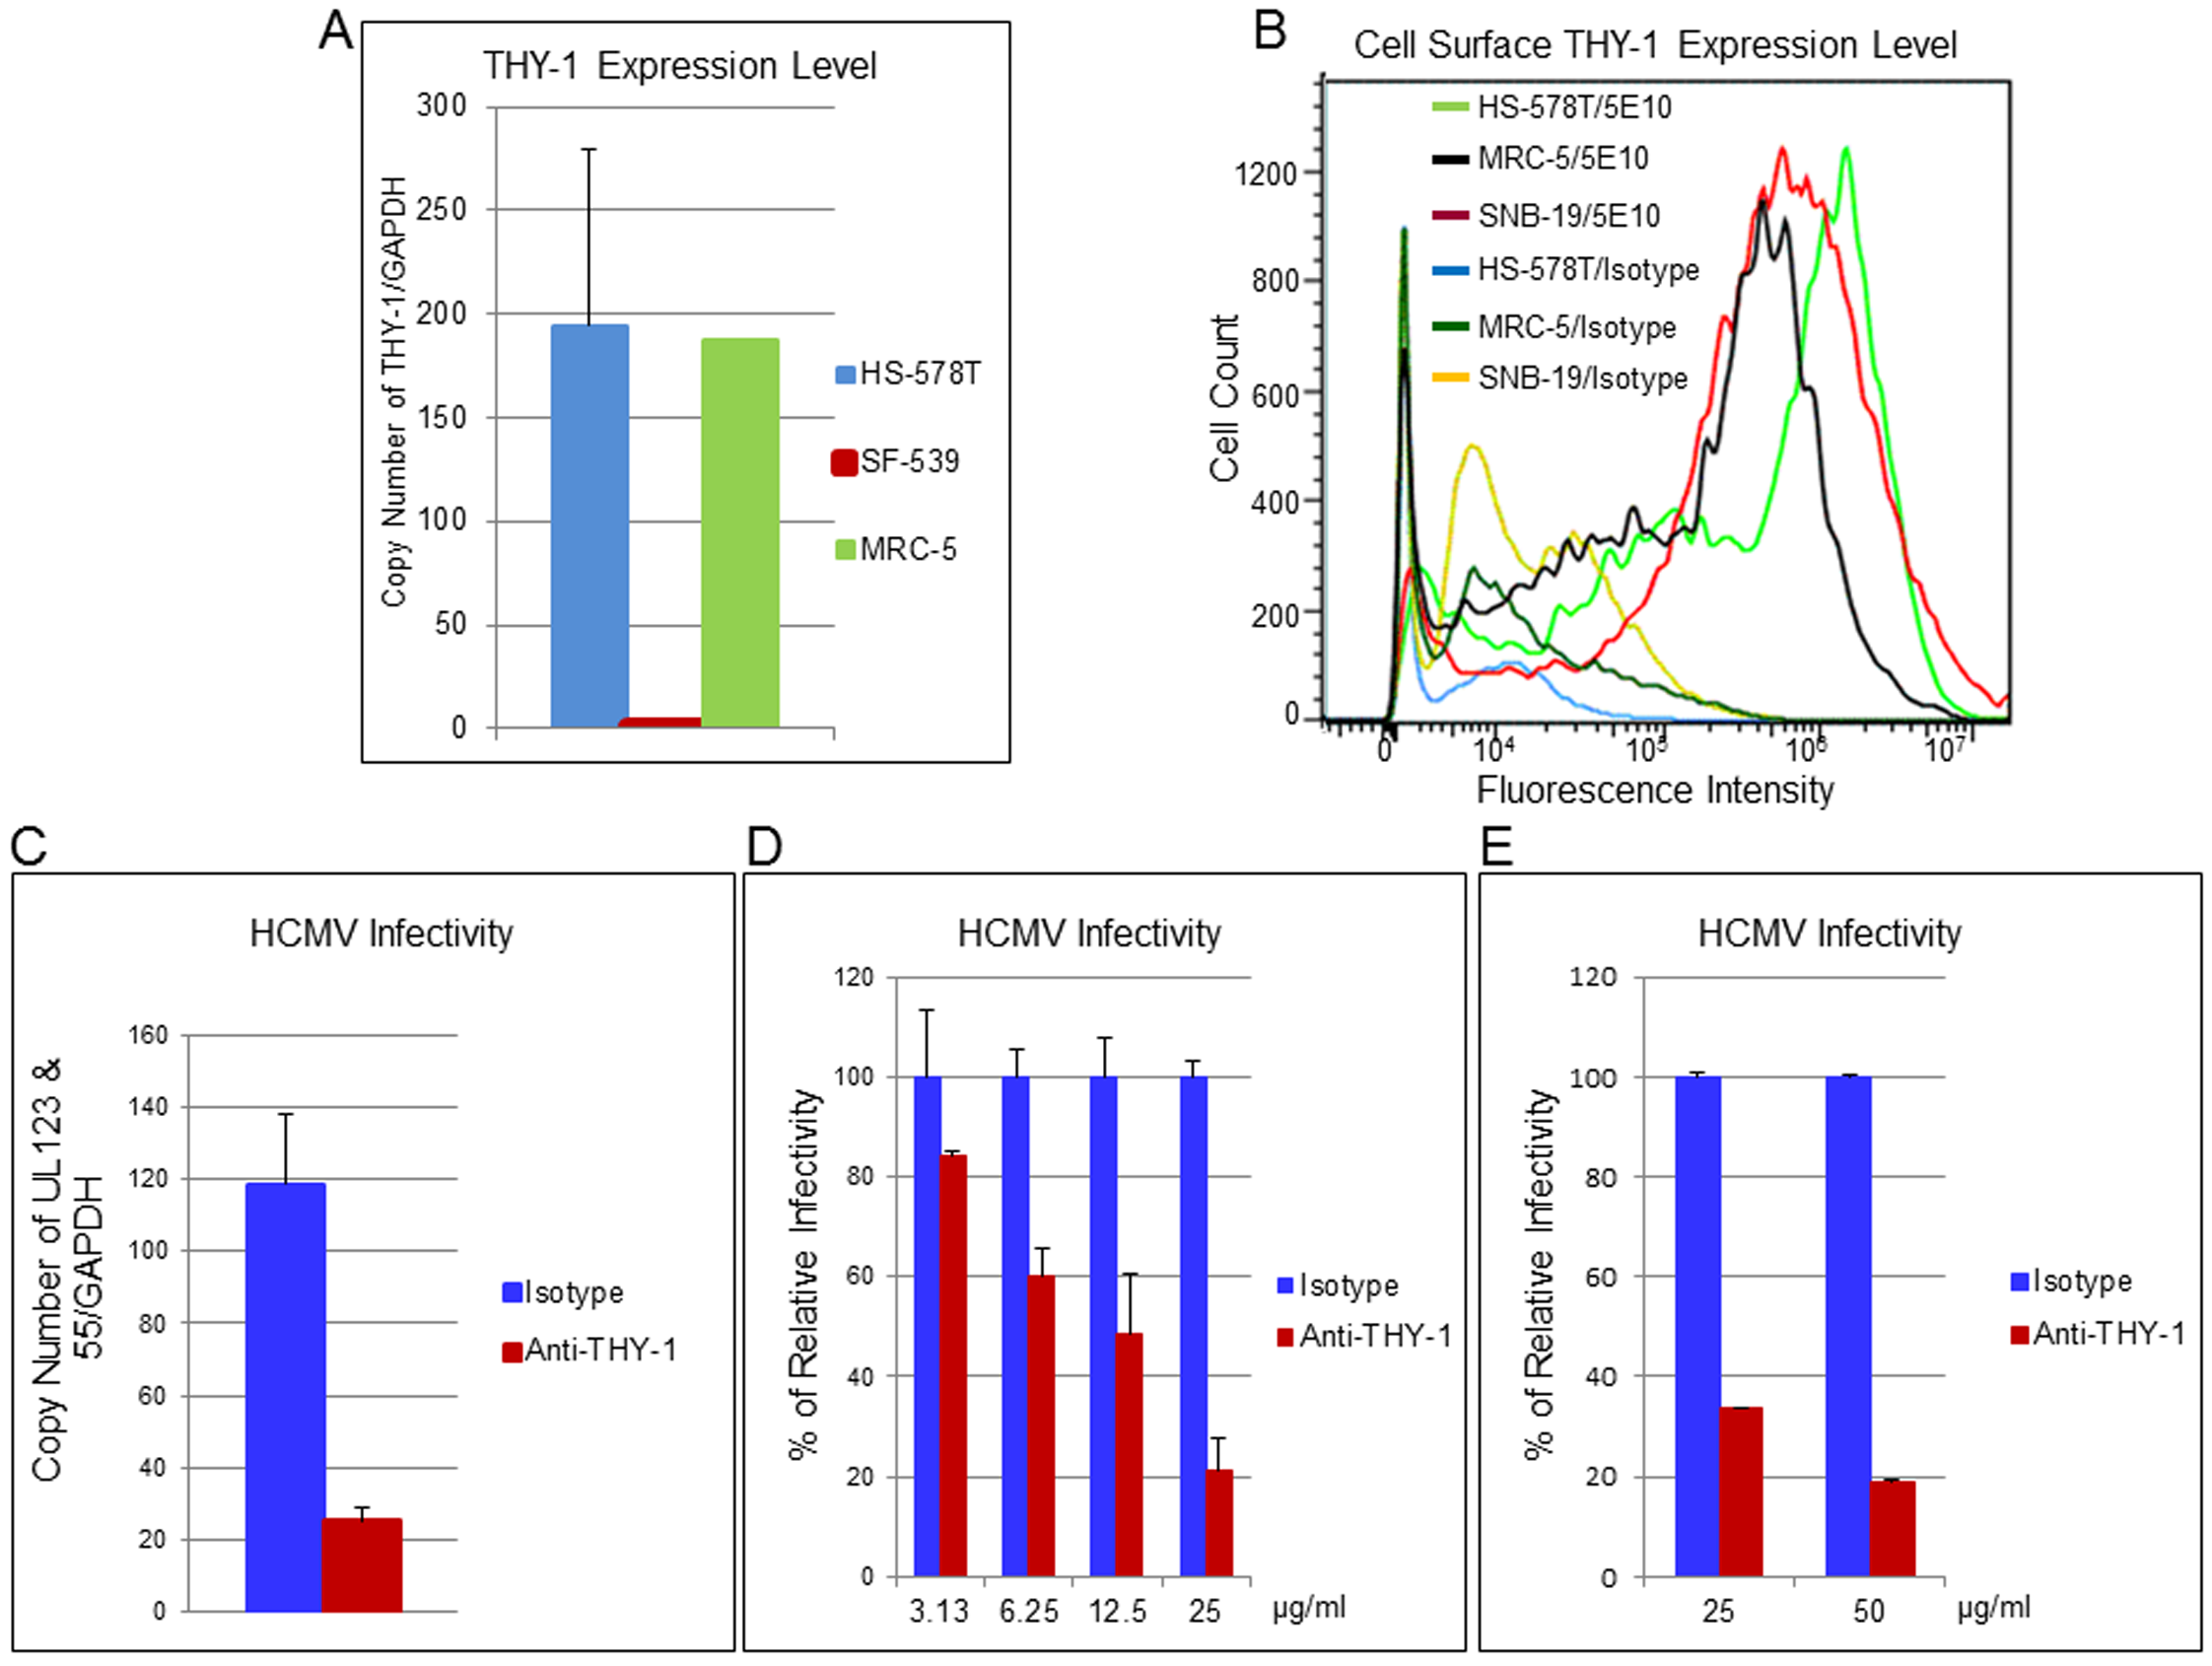 THY-1 antibody binds to cell surface THY-1 protein and blocks HCMV entry in a dose-dependent manner.